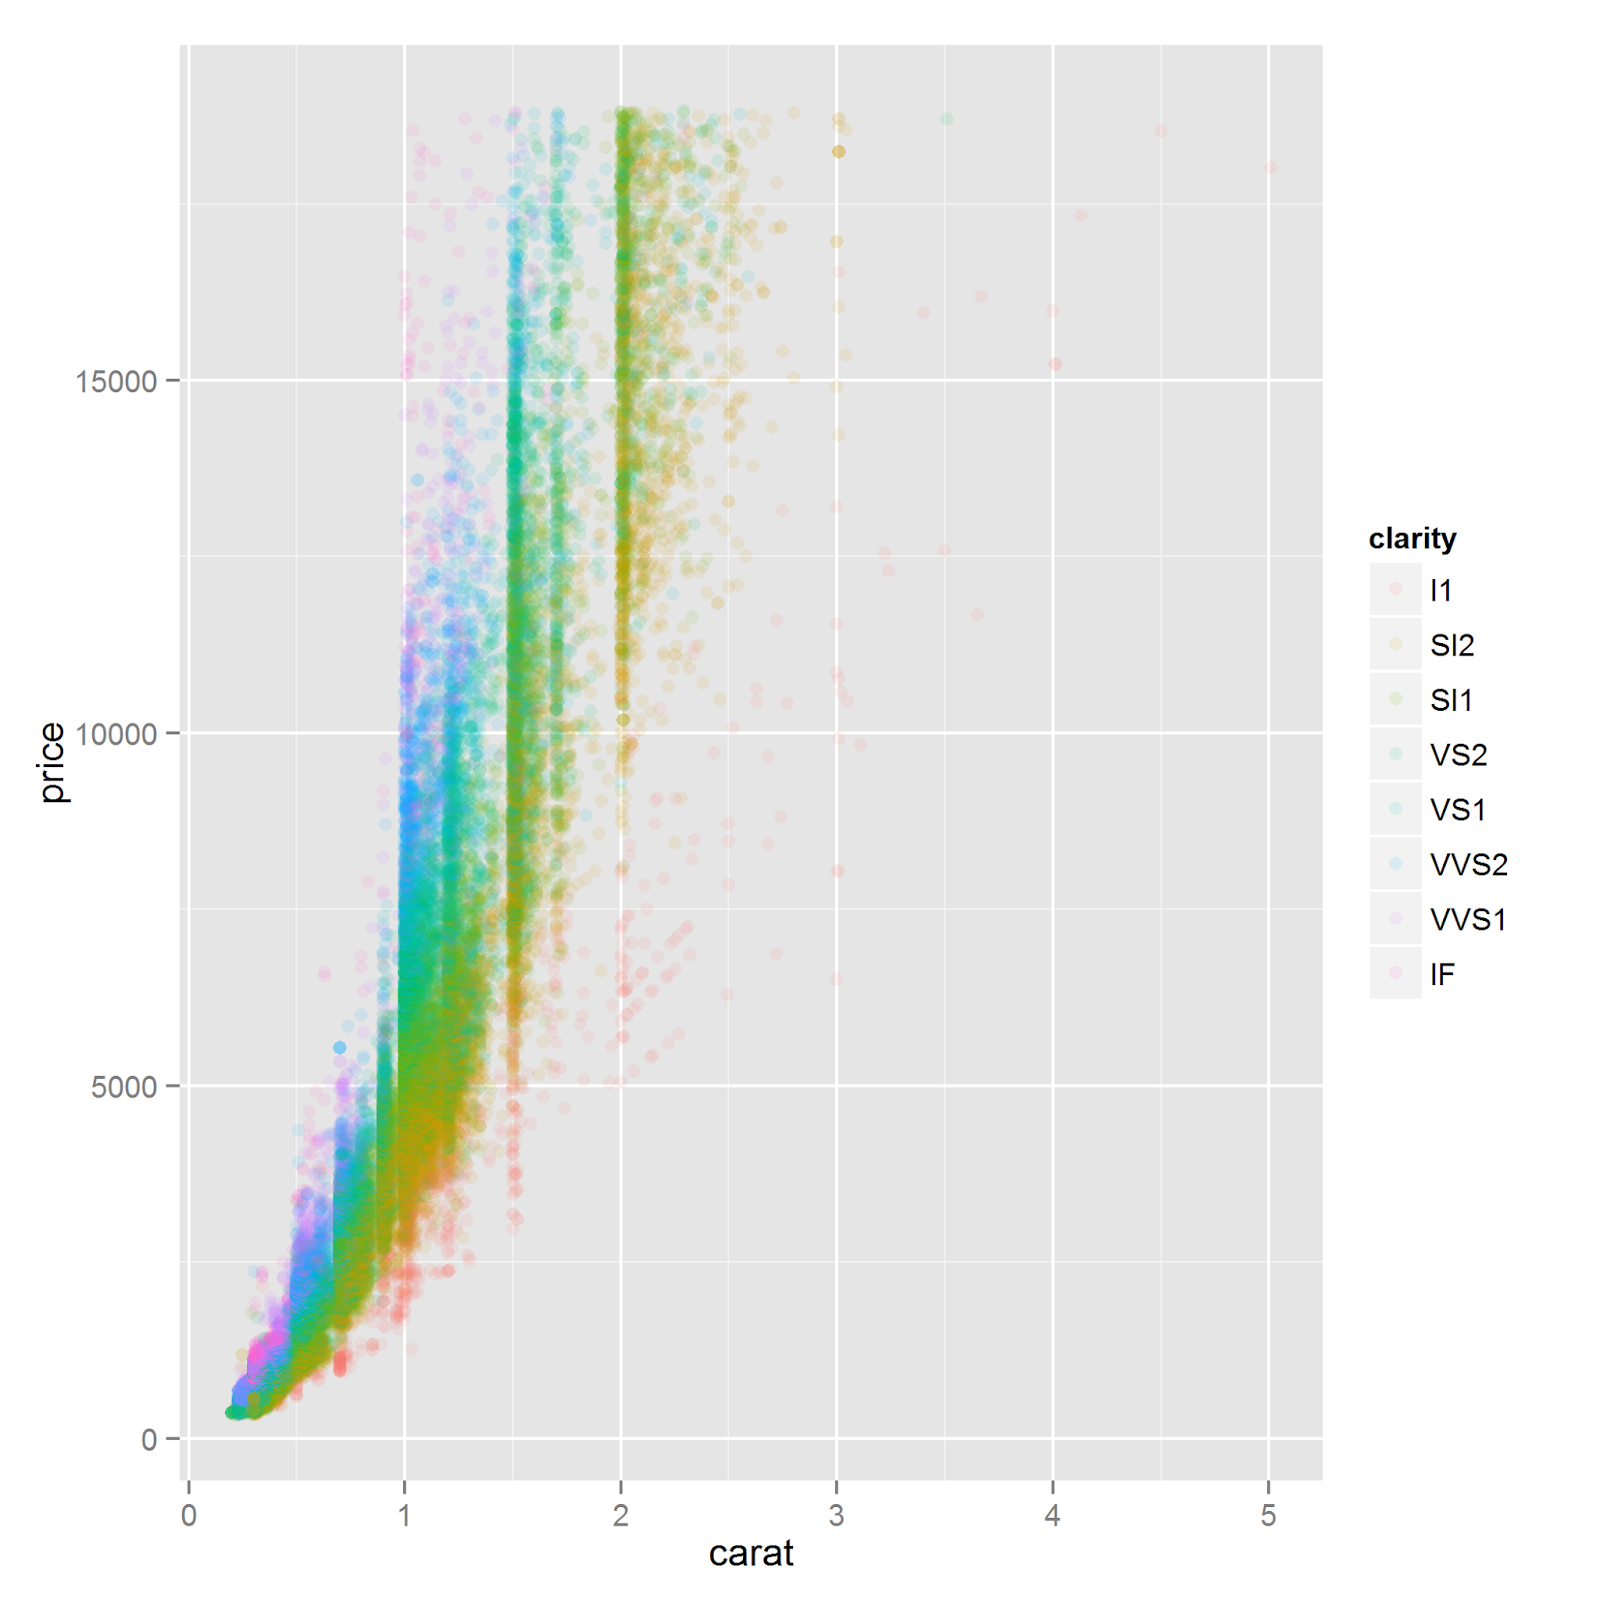 ggplot data diamonds aes x carat y price initialize plot geom point aes color clarity alpha 0 1 add transparency